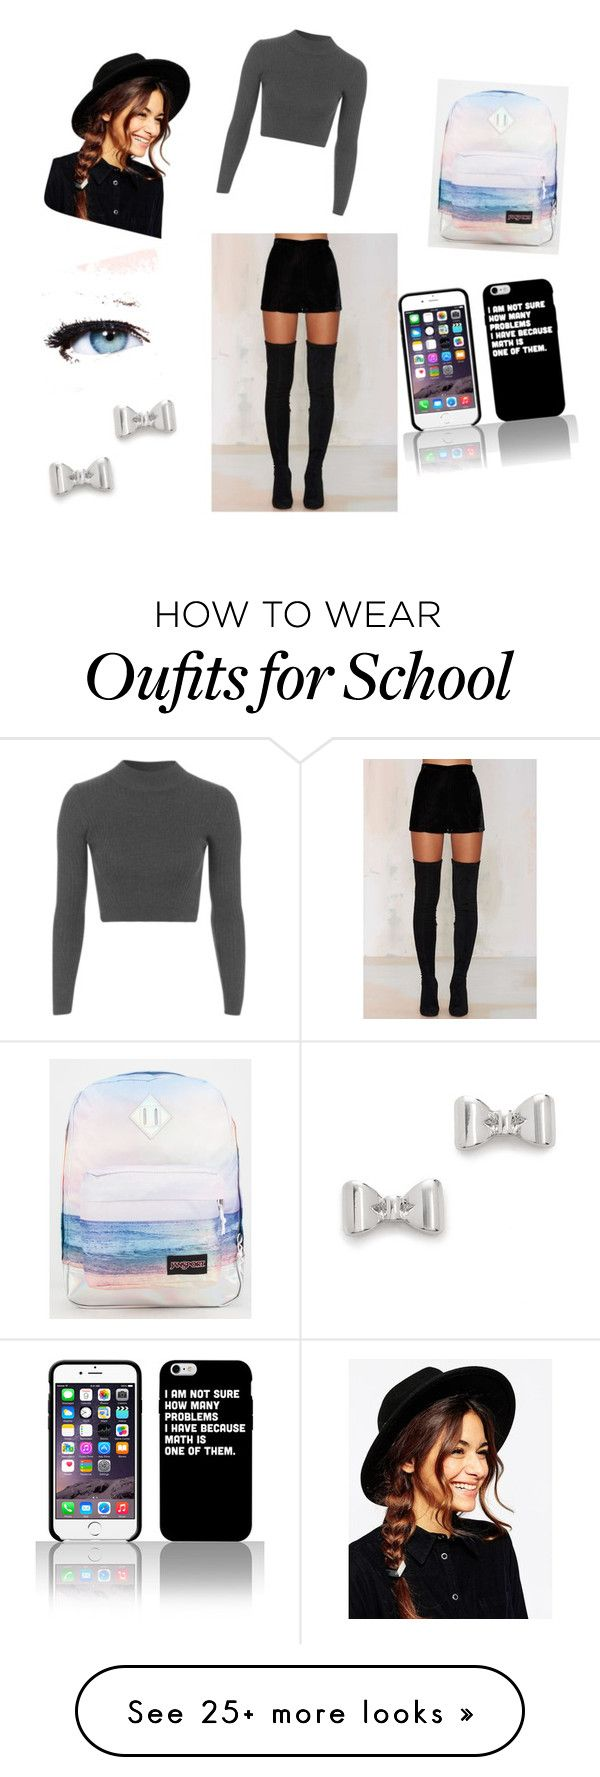 """""""back school cool"""" by alexmedley on Polyvore featuring Native Rose, Topshop, JanSport, ASOS, Maybelline and Marc by Marc Jacobs"""